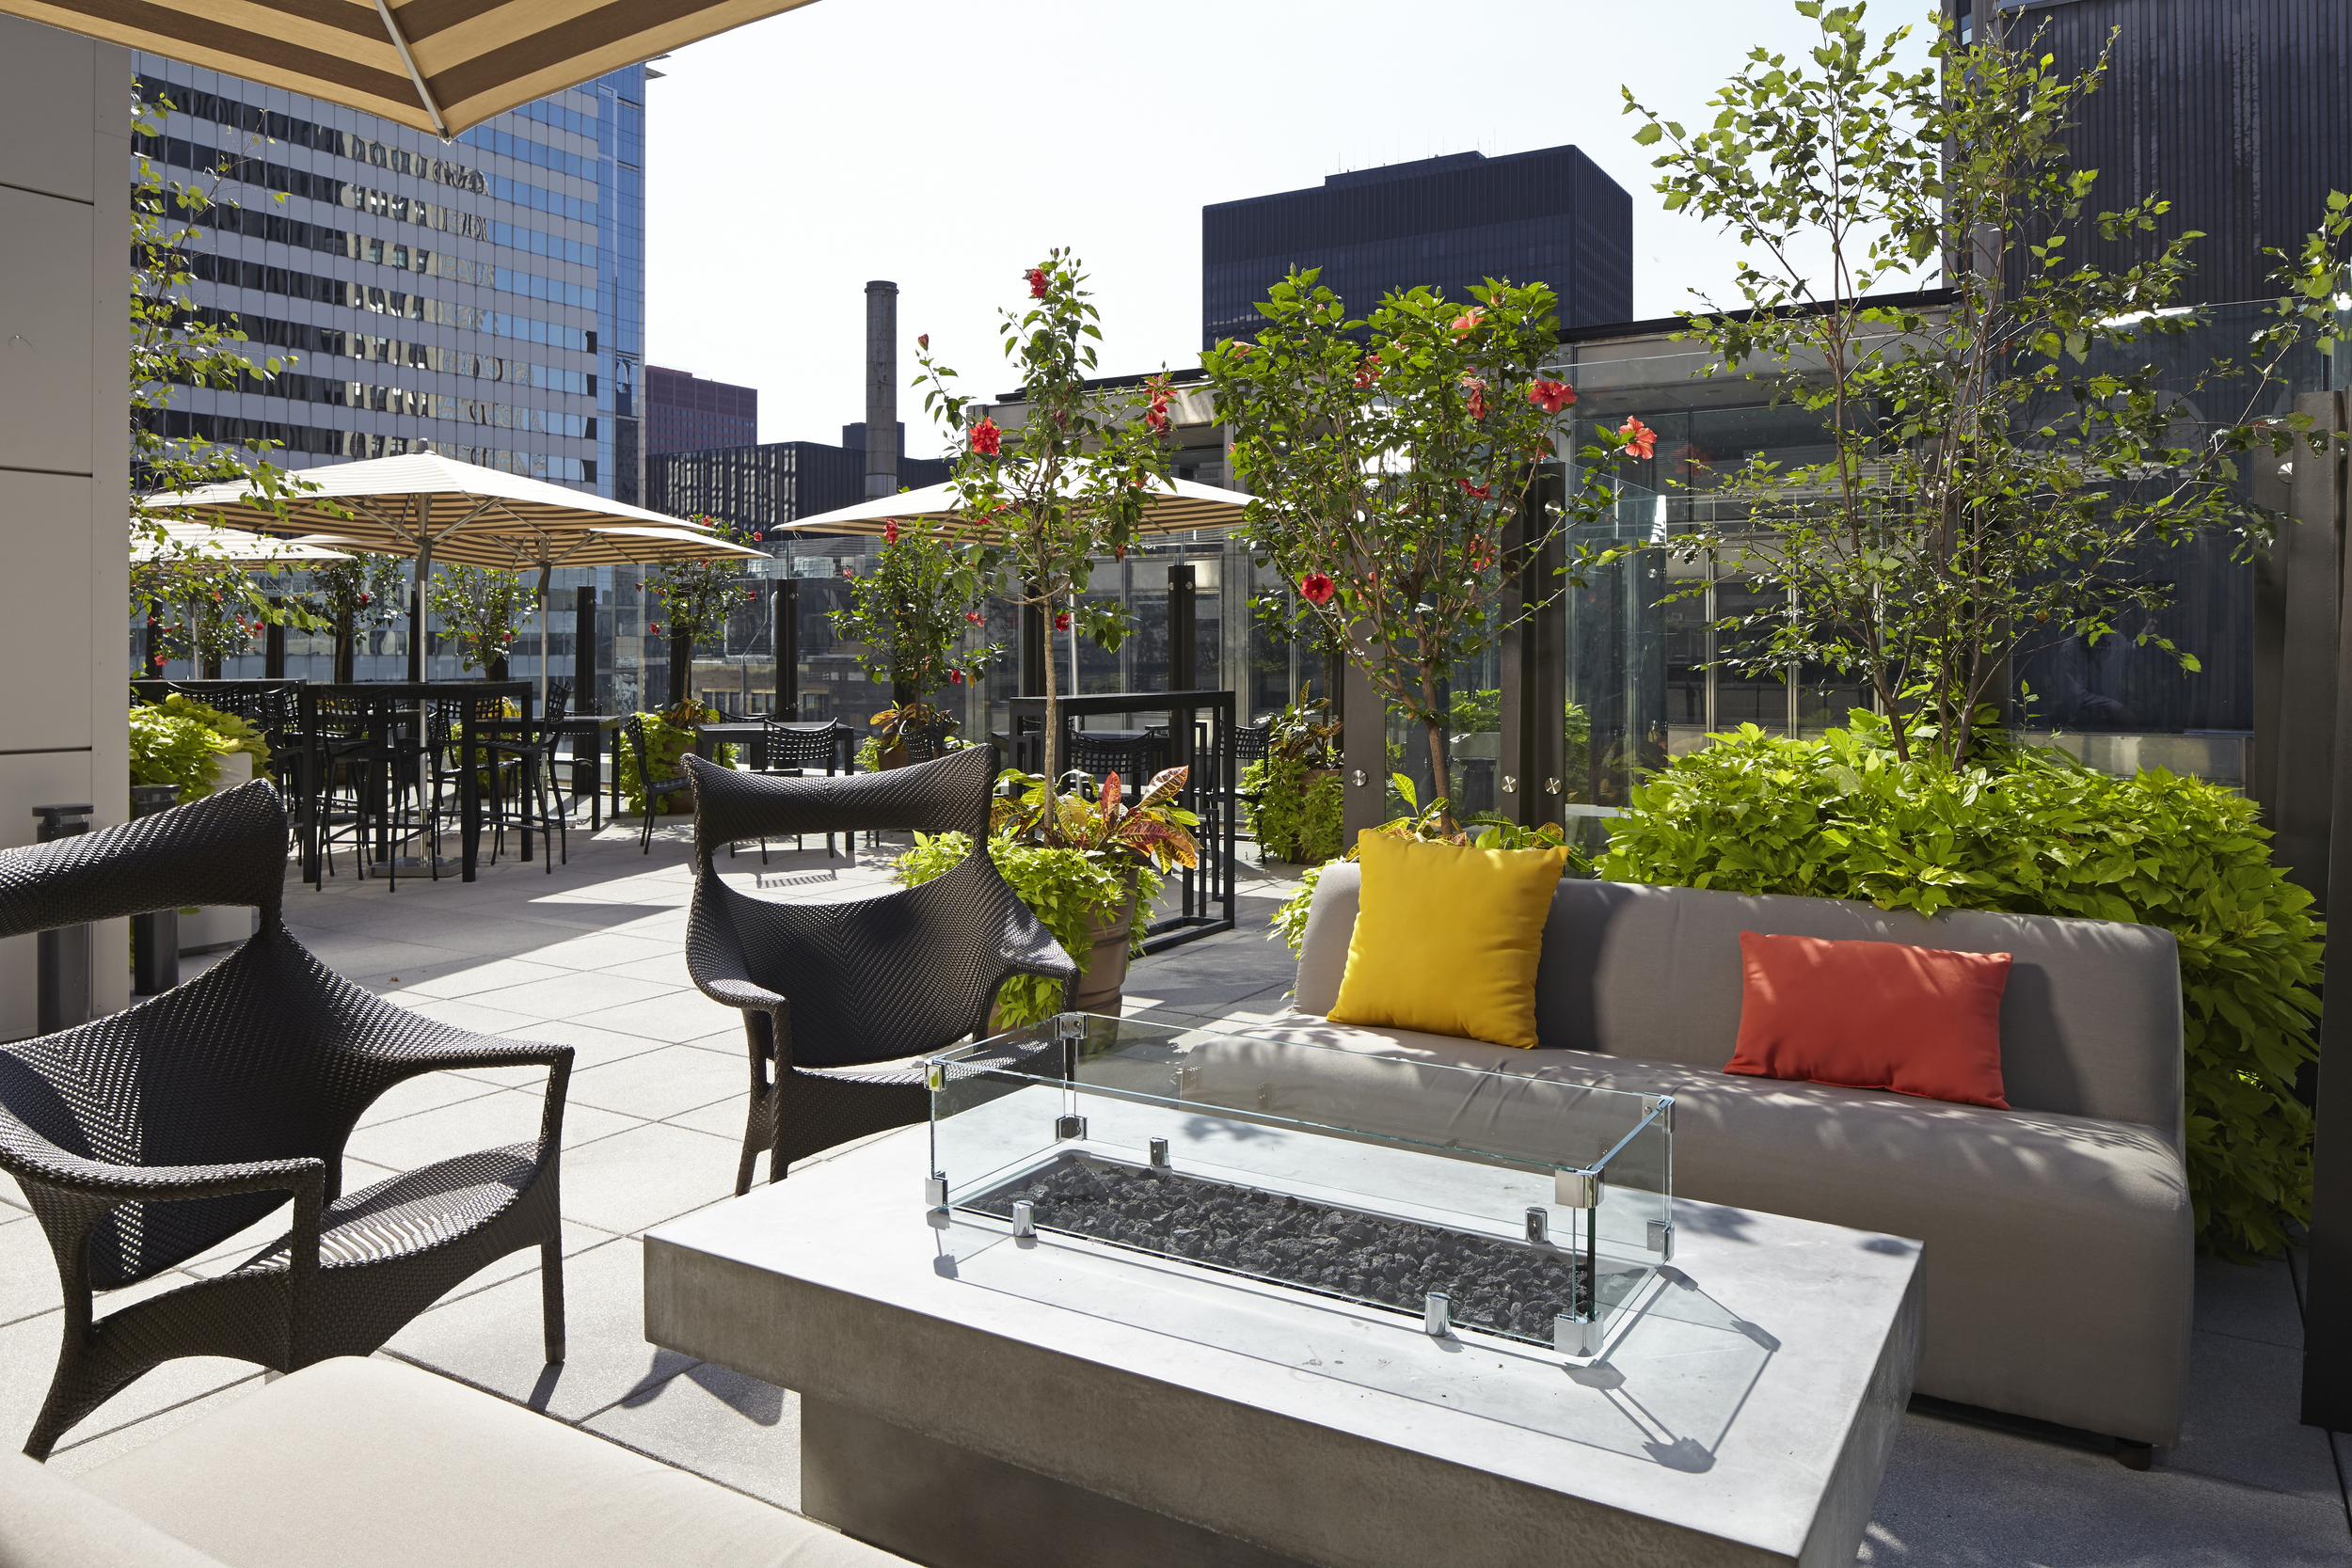 aire1hyatt_hyattdam_images_2016_03_04_1150_Hyatt-Centric-The-Loop-Chicago-P123-Aire-Fire-Pit1.jpg